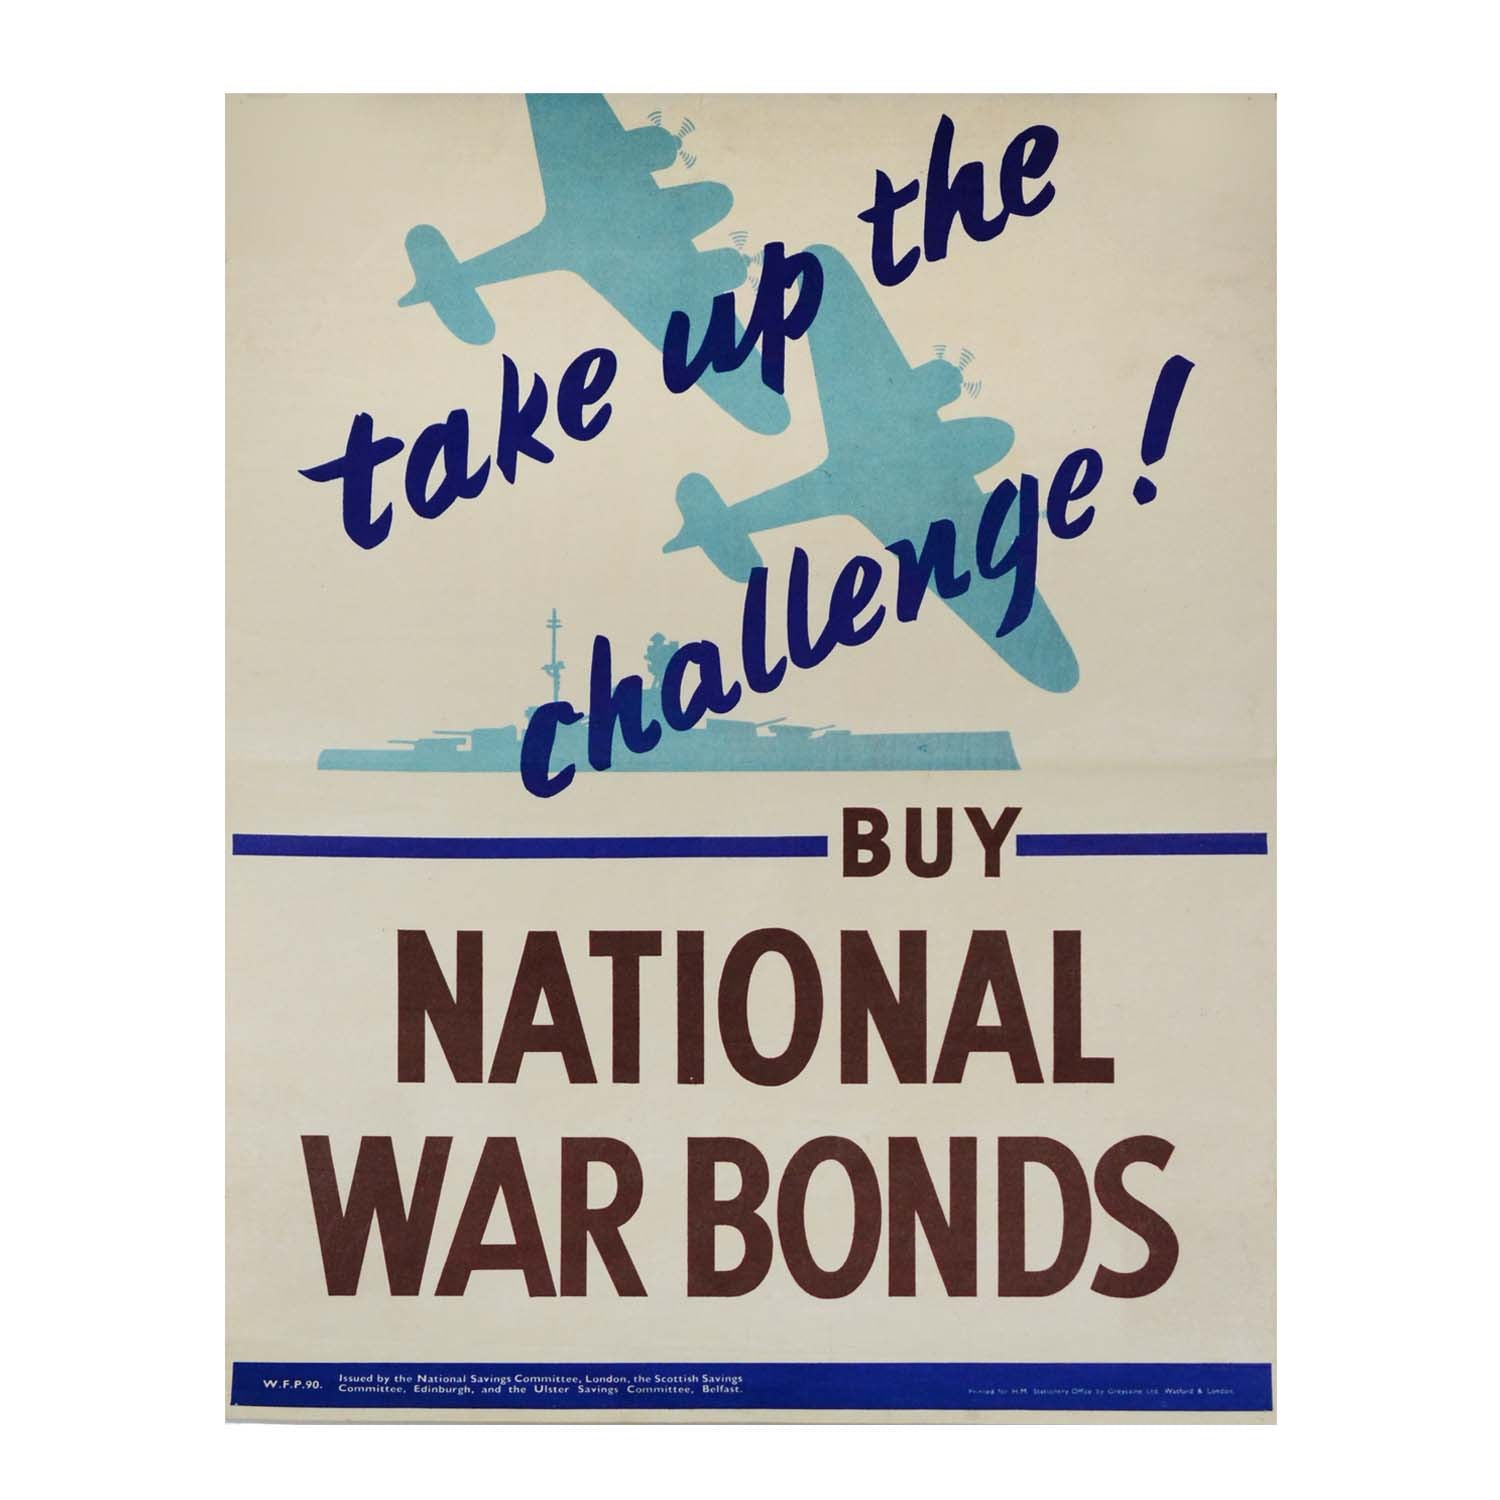 Original Take up the Challenge Second World War poster